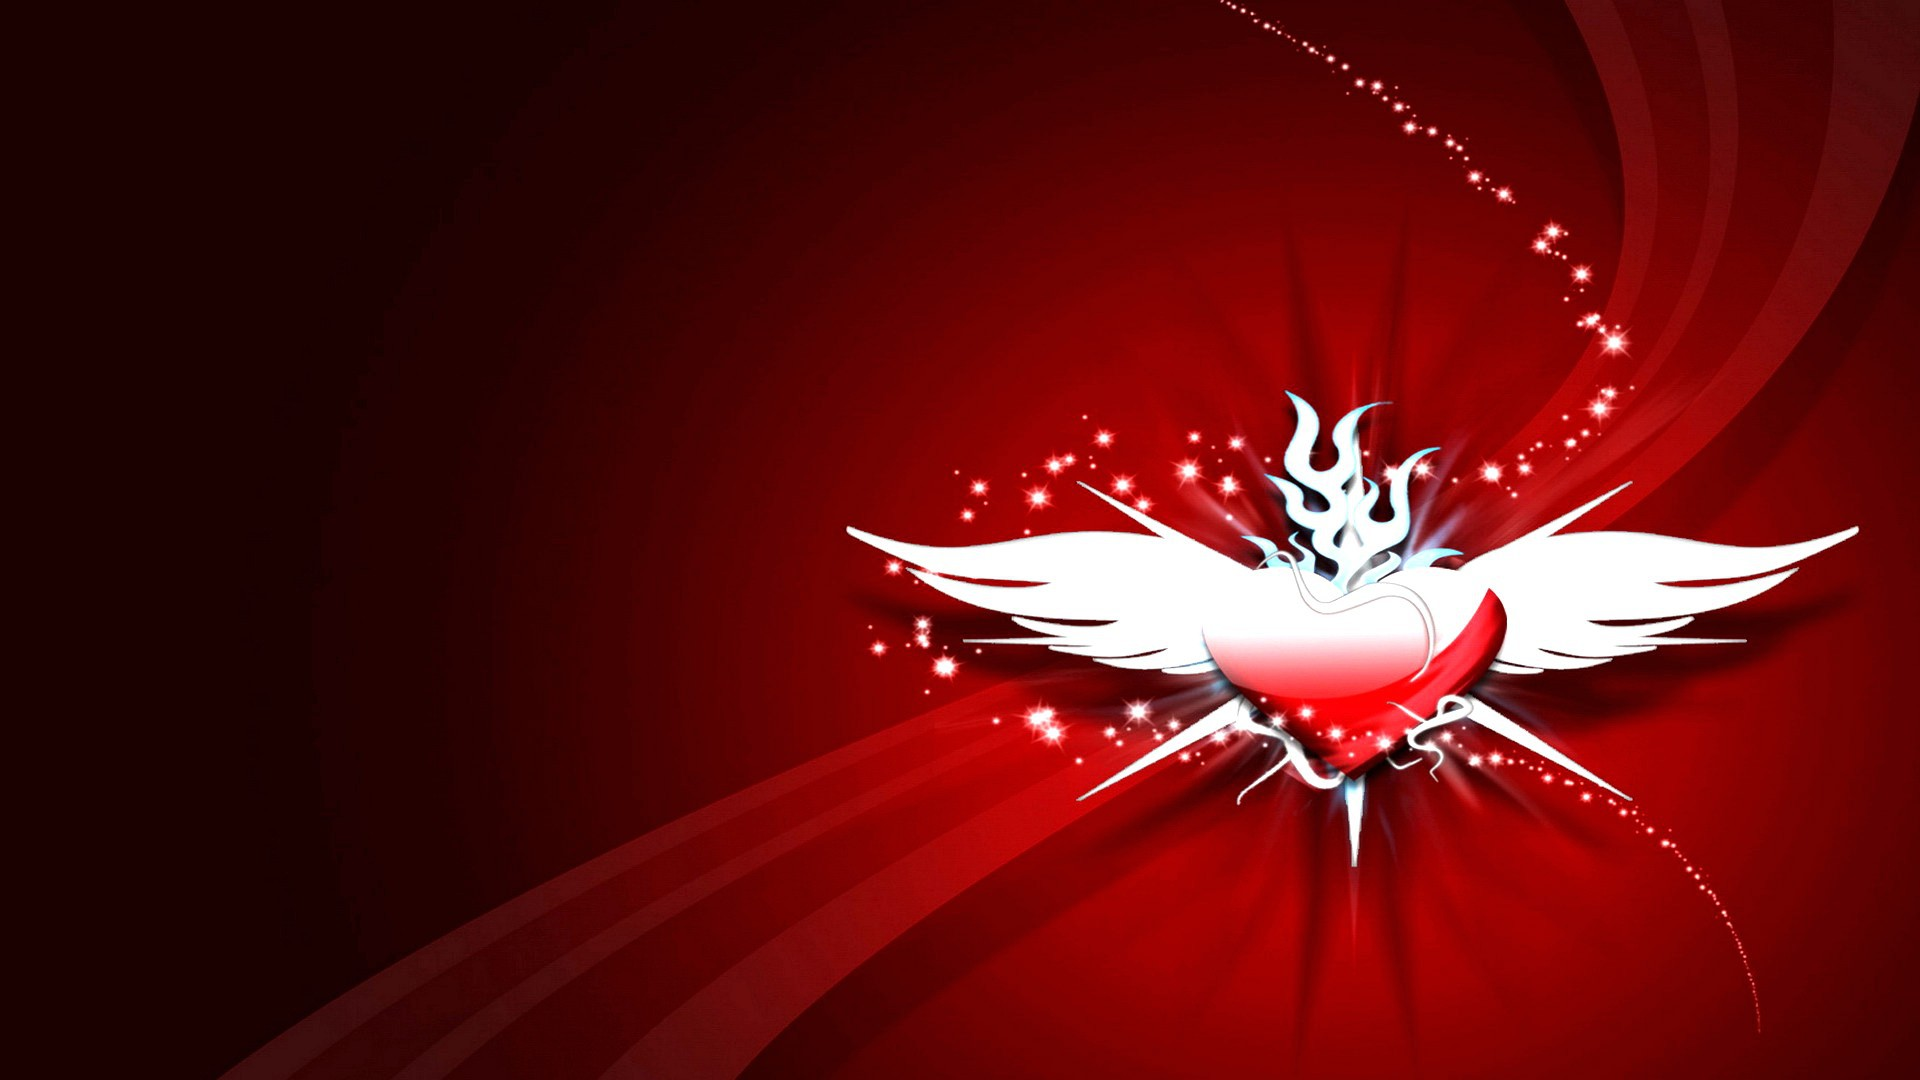 Creative Hd Wallpapers Free Download A Heart With Wings On A Red Background Wallpapers And